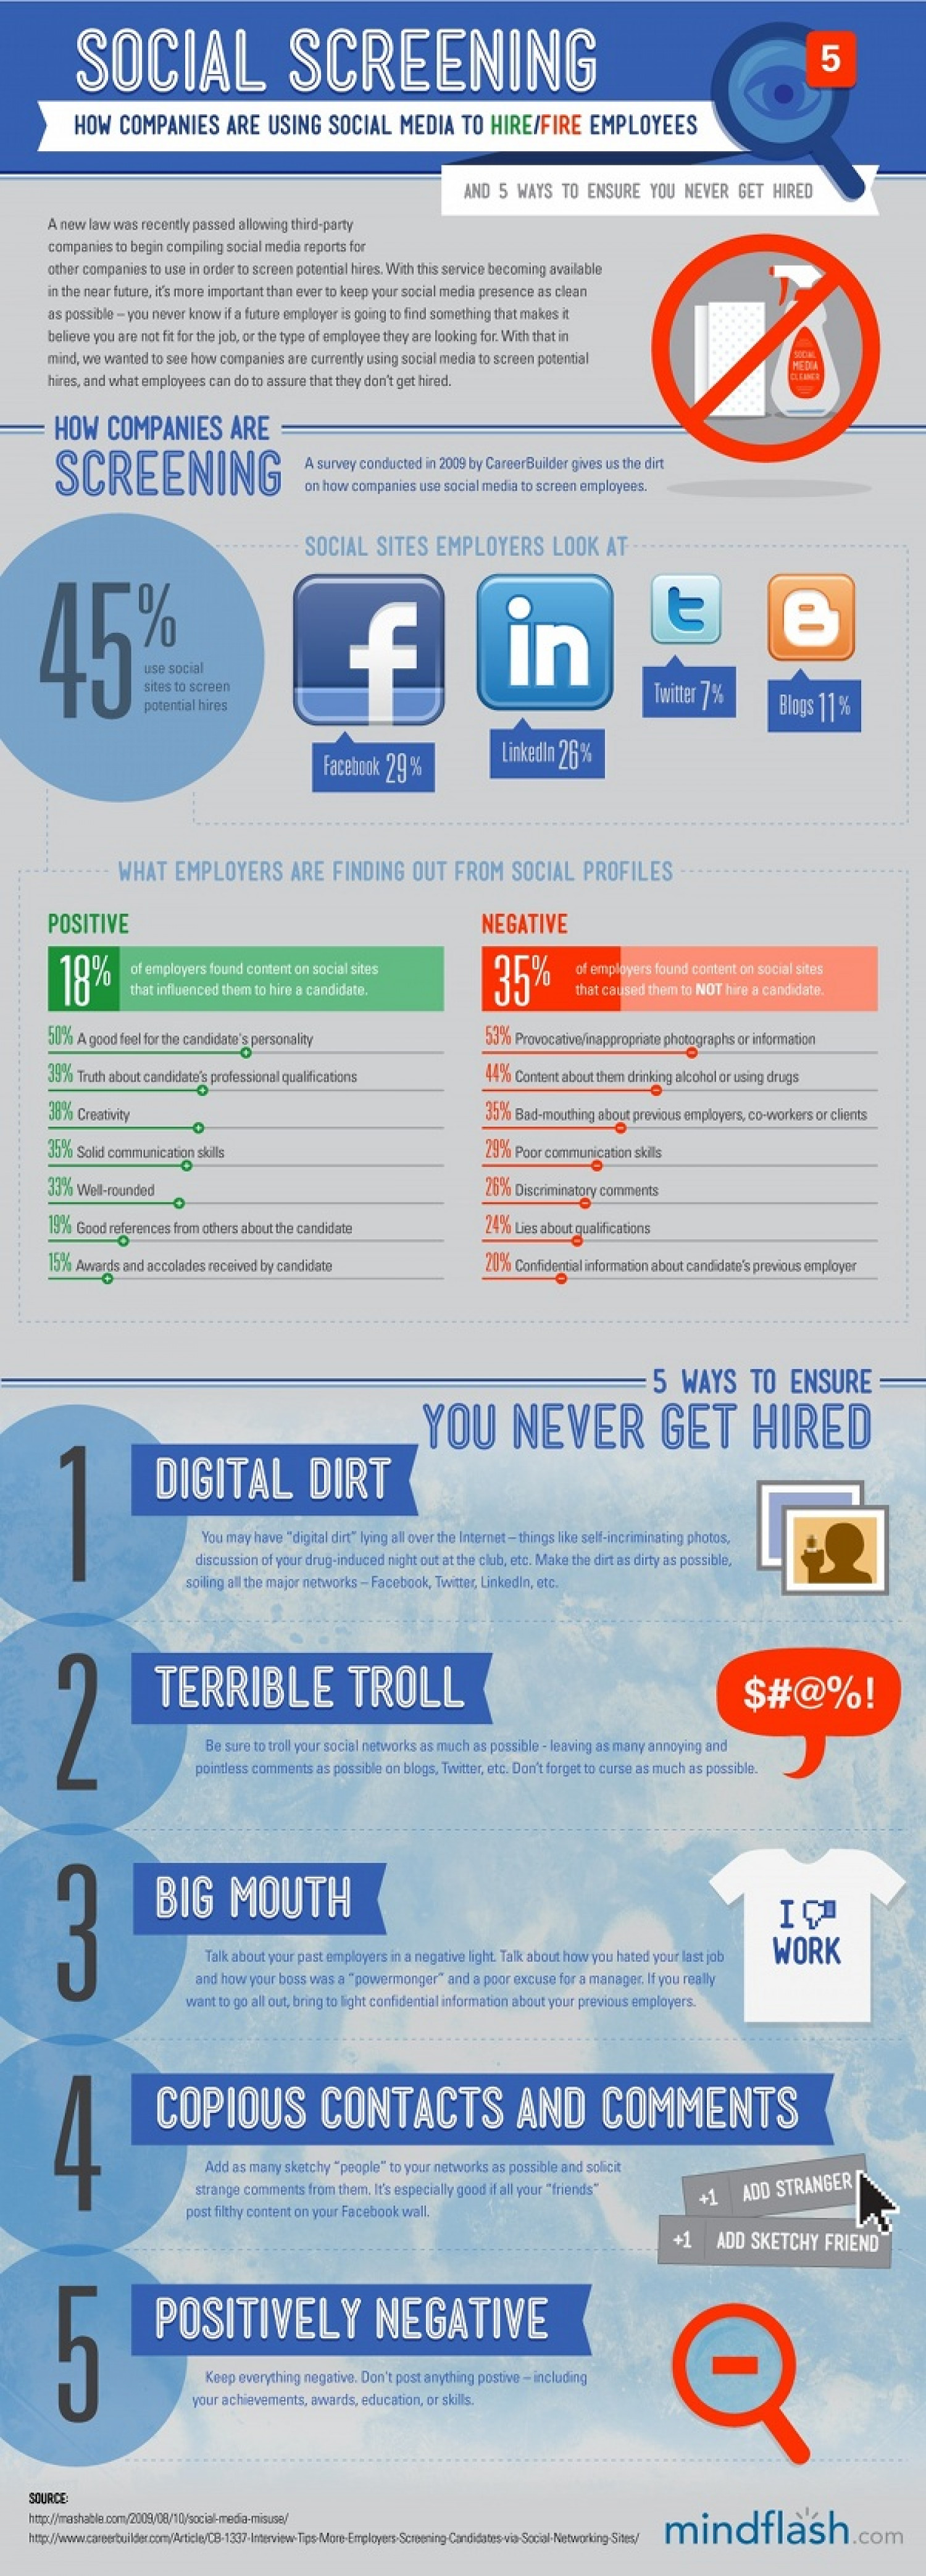 Social Screening: How Companies are using Social Media to hire/fire Employees  Infographic